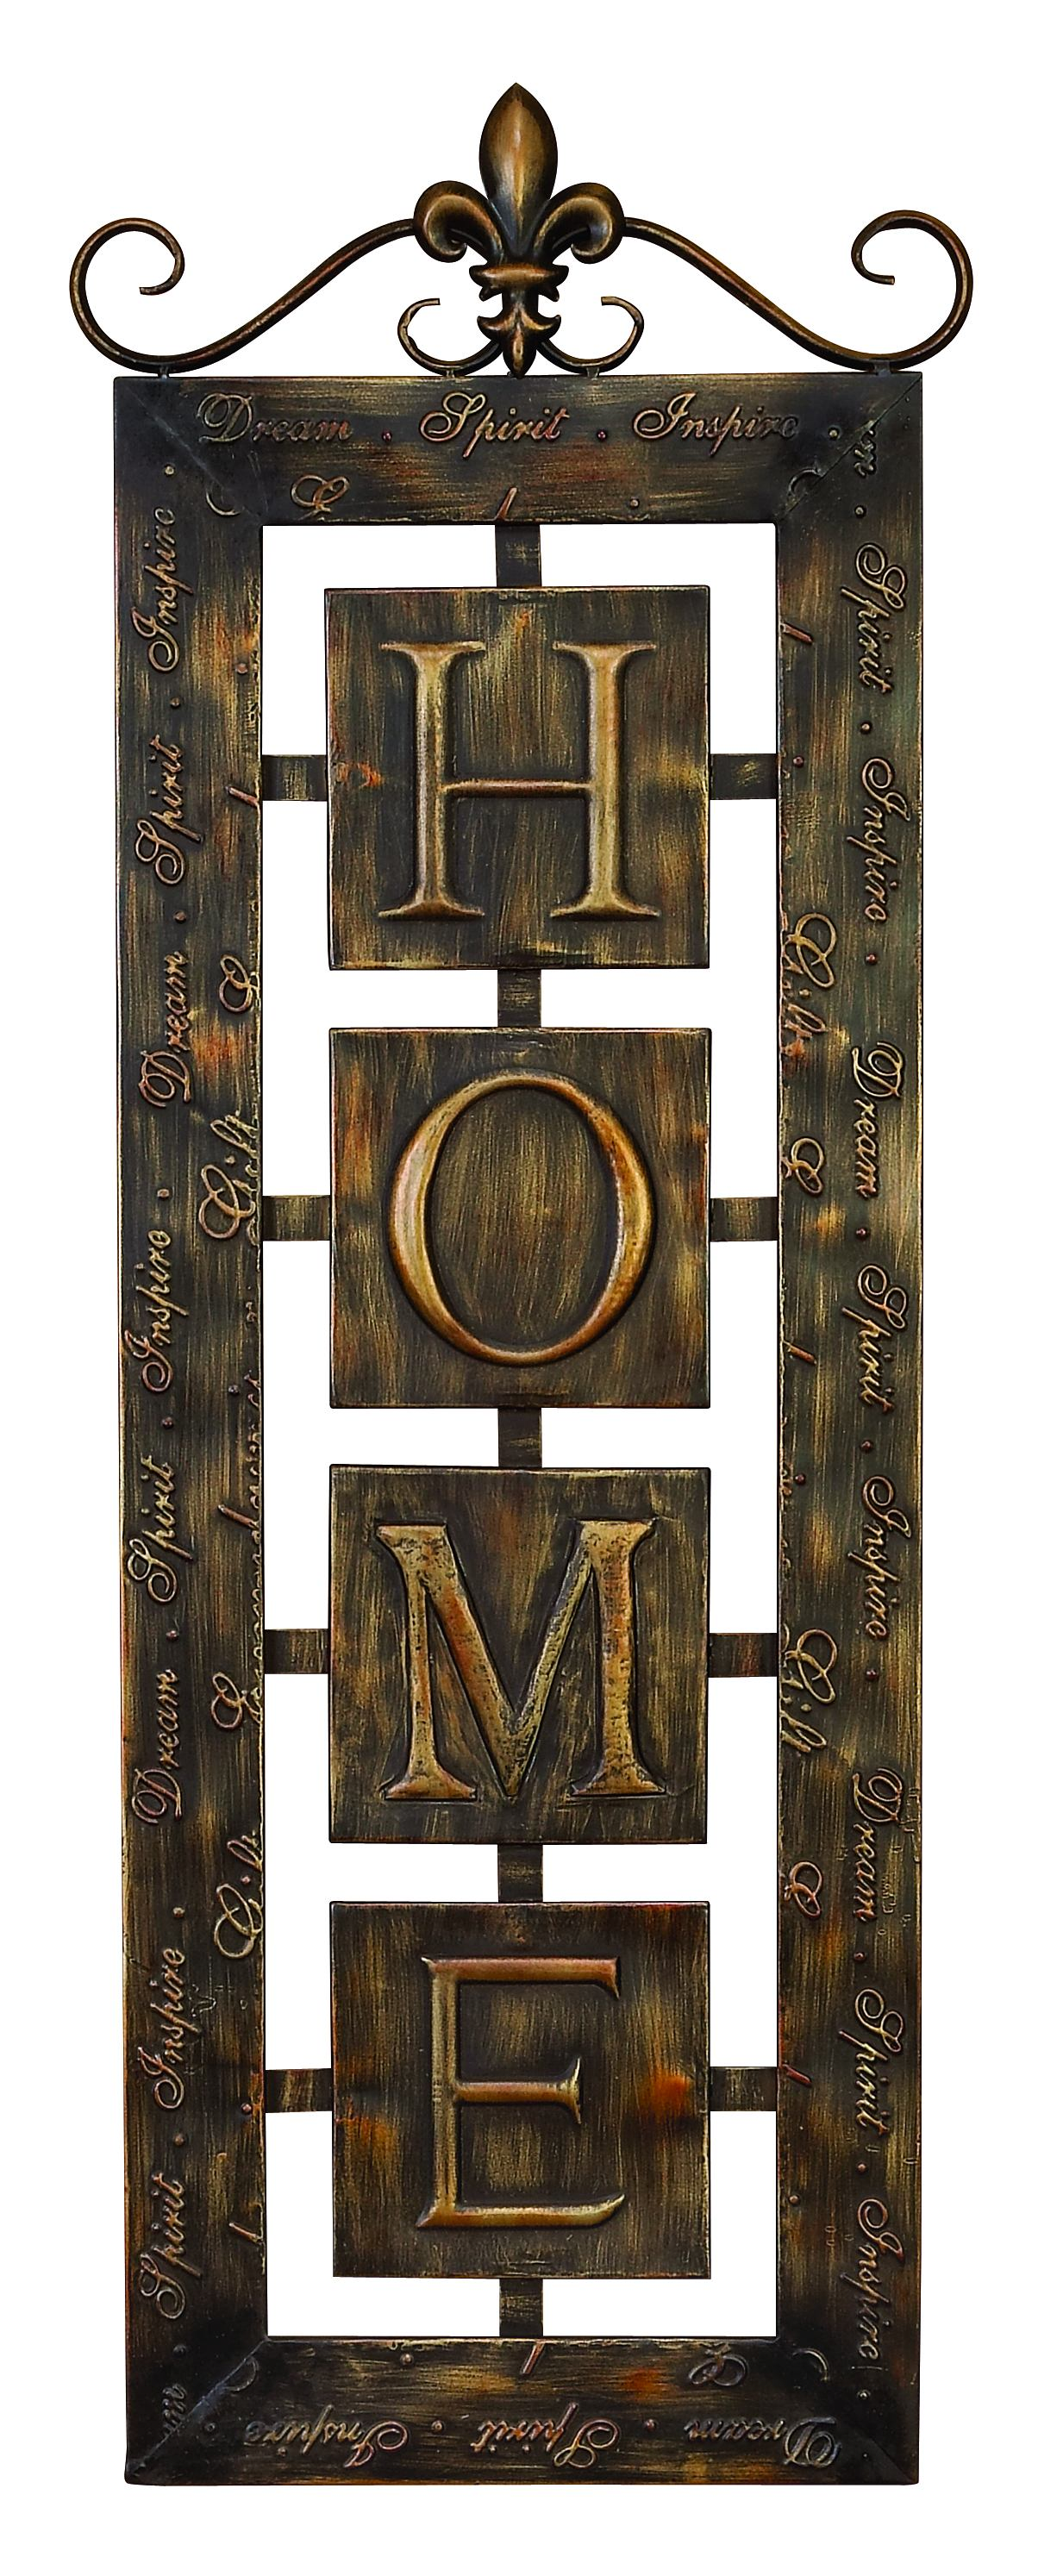 Metal Wall Plaque 'Home' An Intimate Wall Decor by Benzara